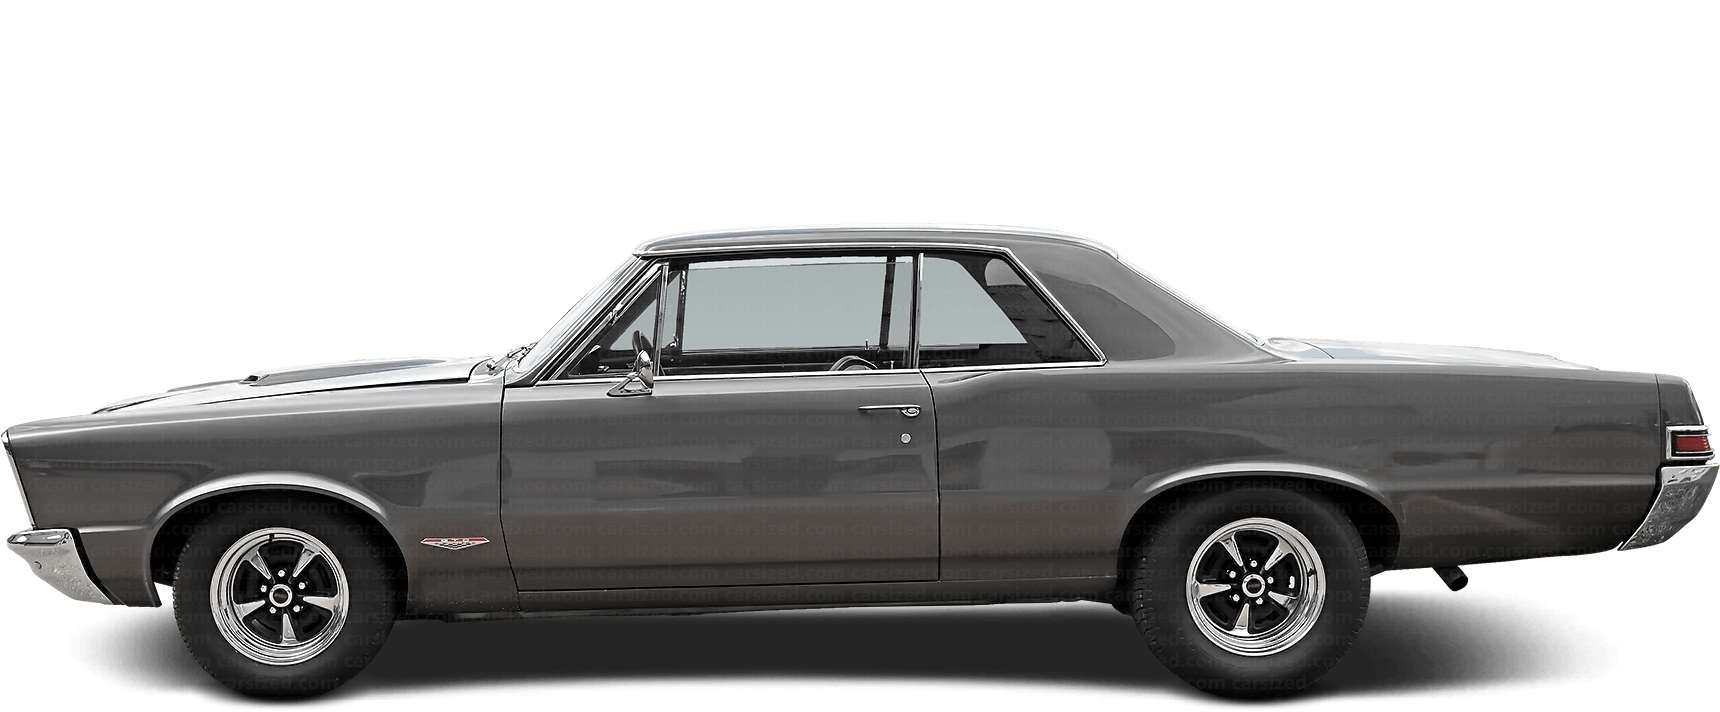 Pontiac GTO coupé 1964-1967 Side View